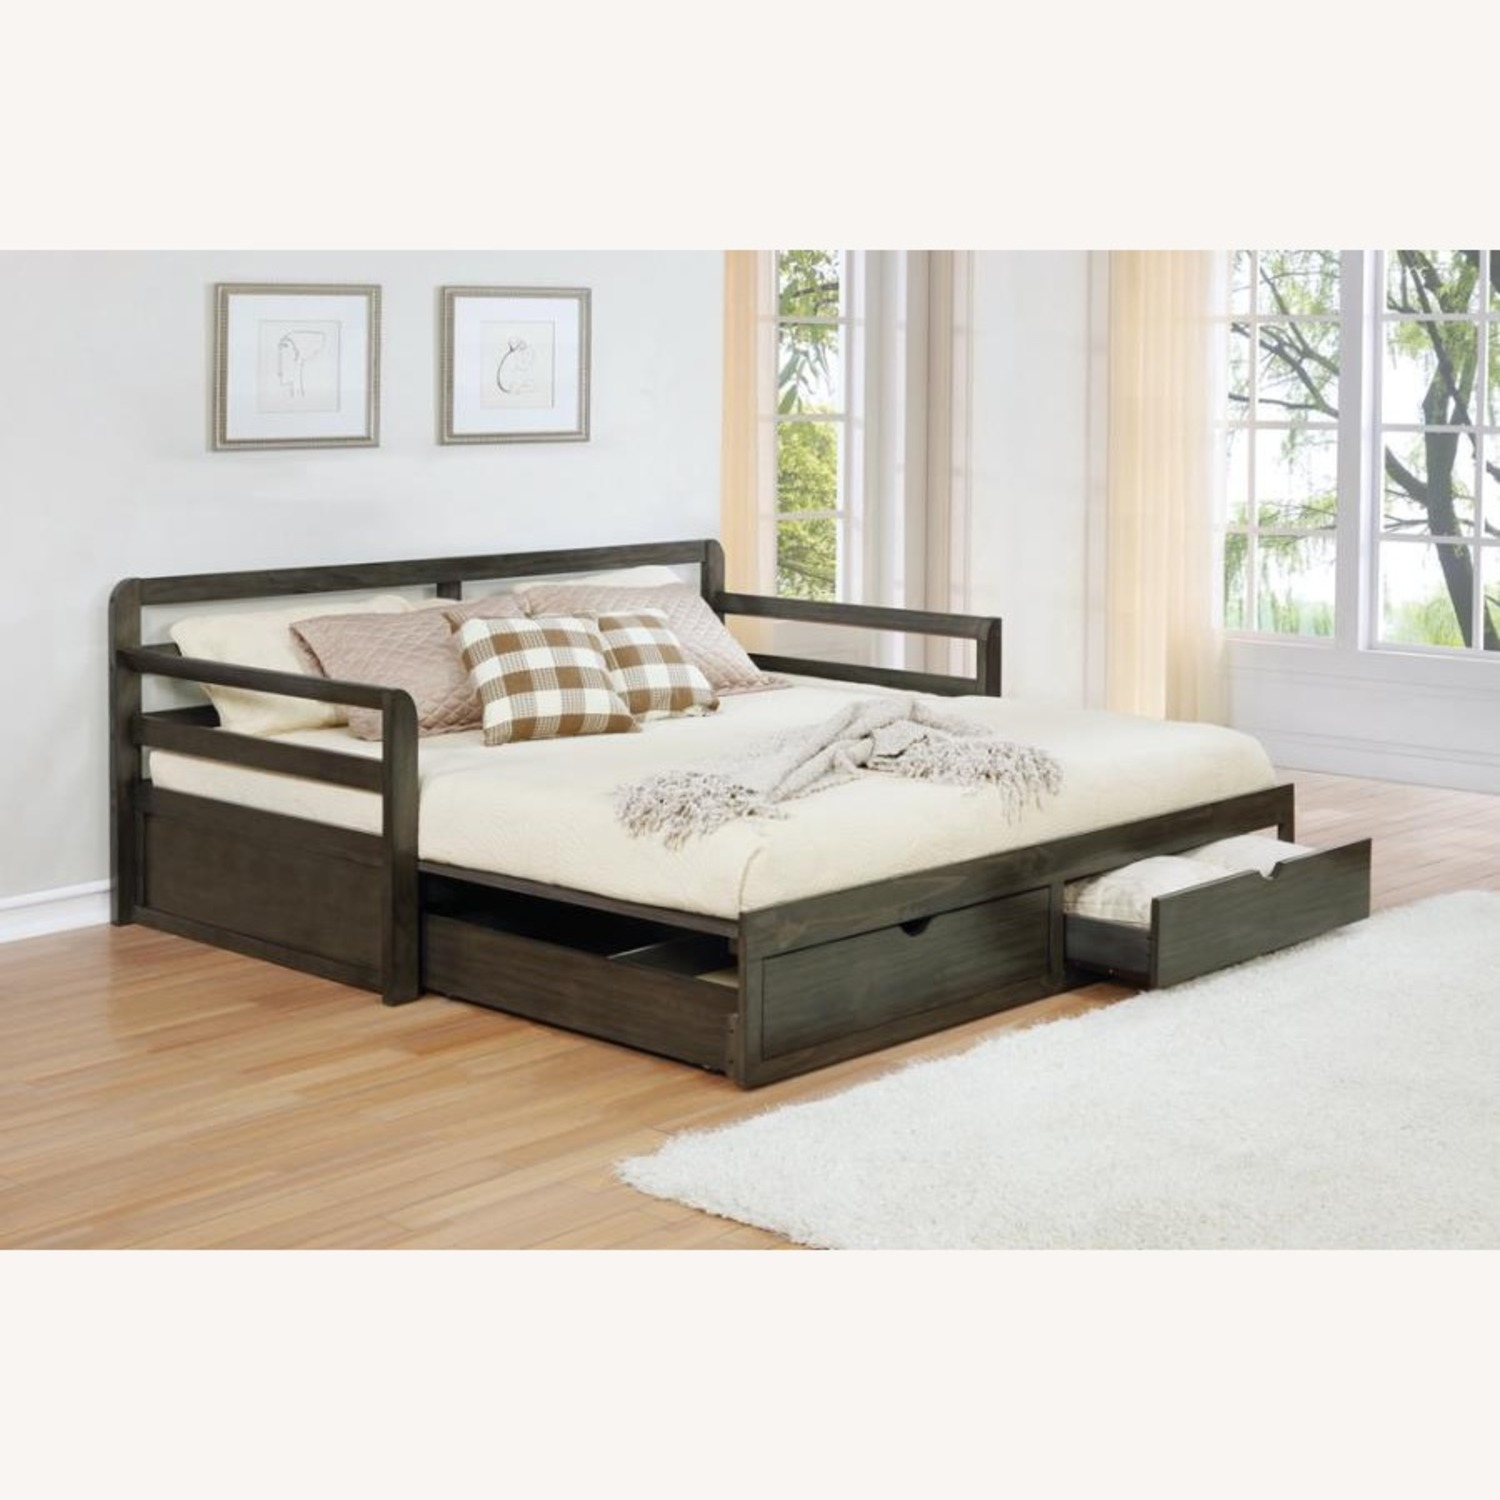 Daybed In Grey Wood Finish W/ Trundle - image-1